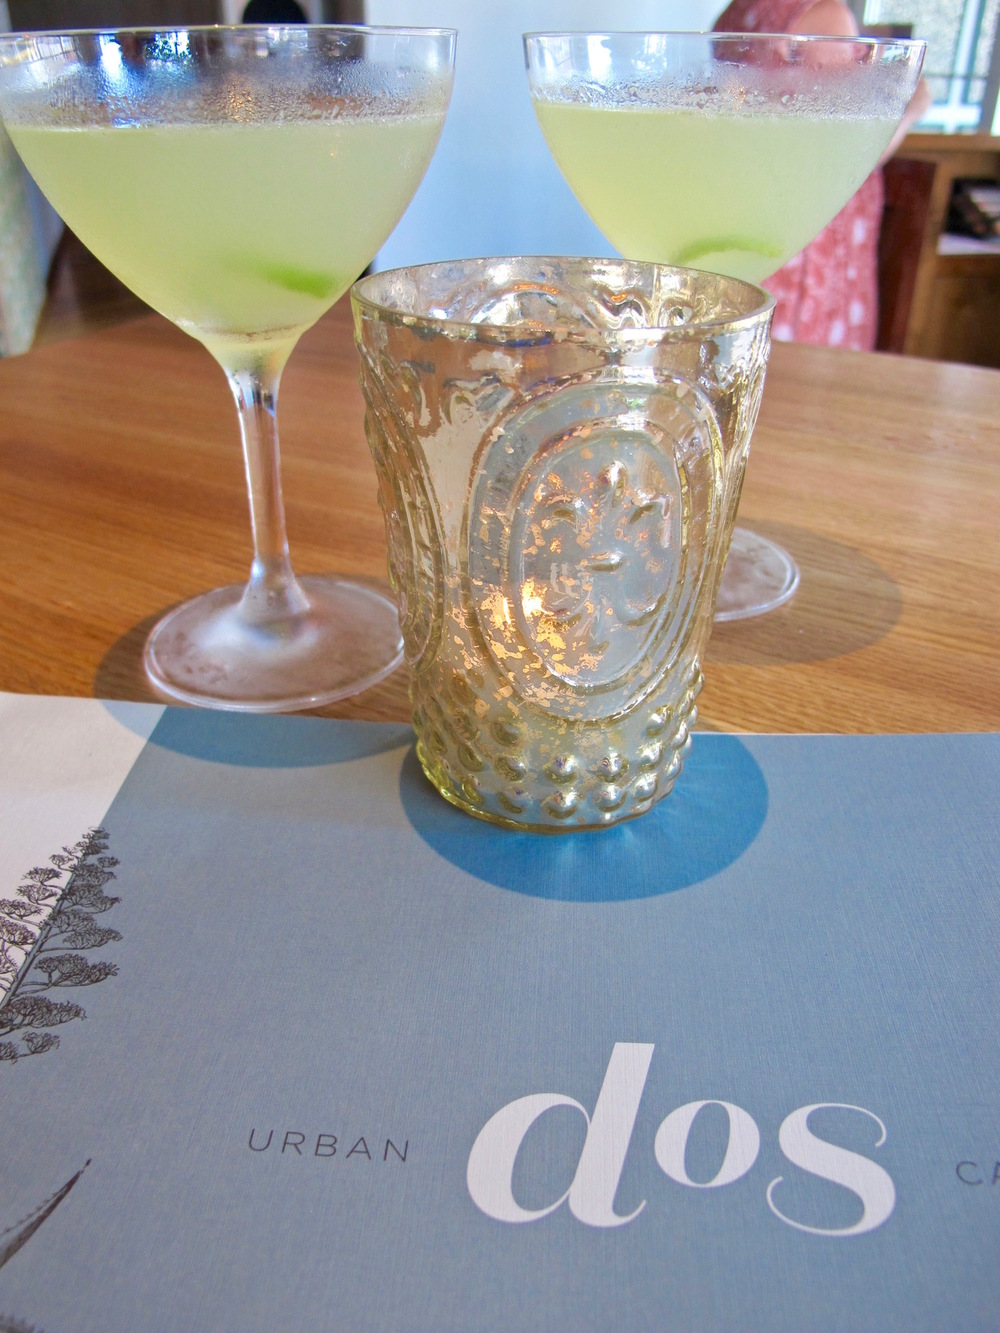 Dos urban cocktails.jpg